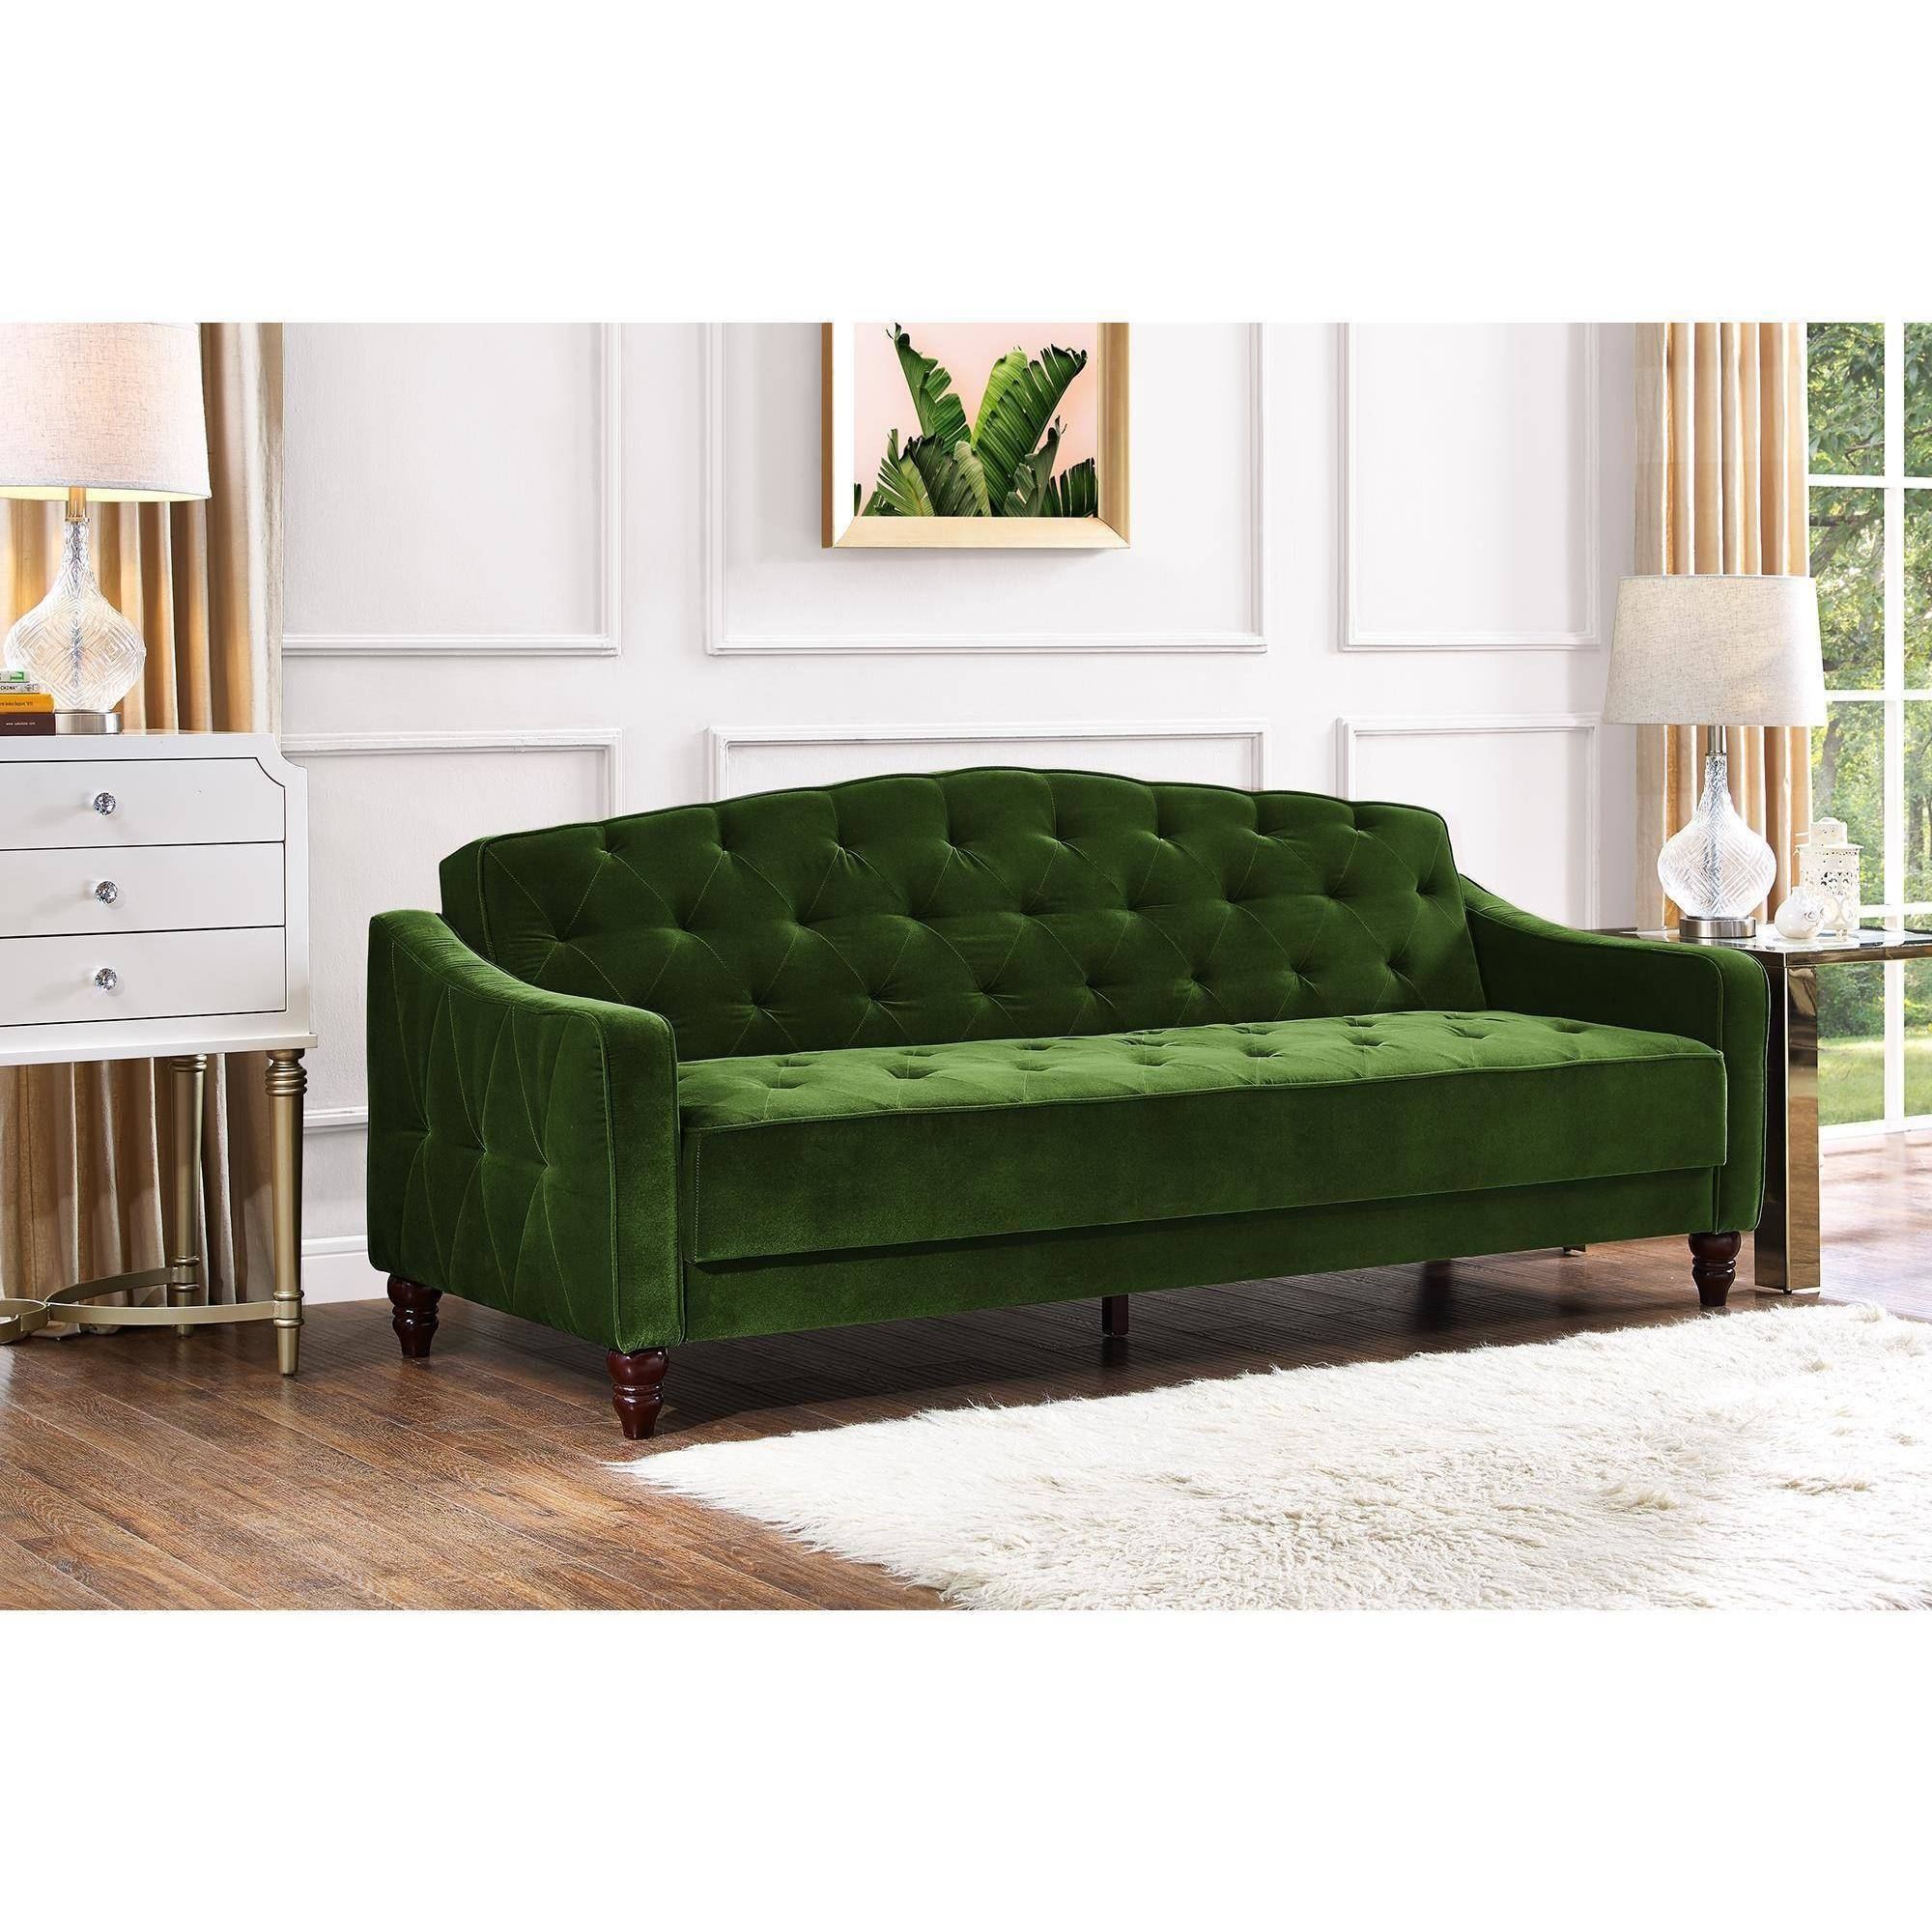 Novogratz Vintage Tufted Sofa Sleeper Ii, Multiple Colors inside Tufted Sleeper Sofas (Image 10 of 15)